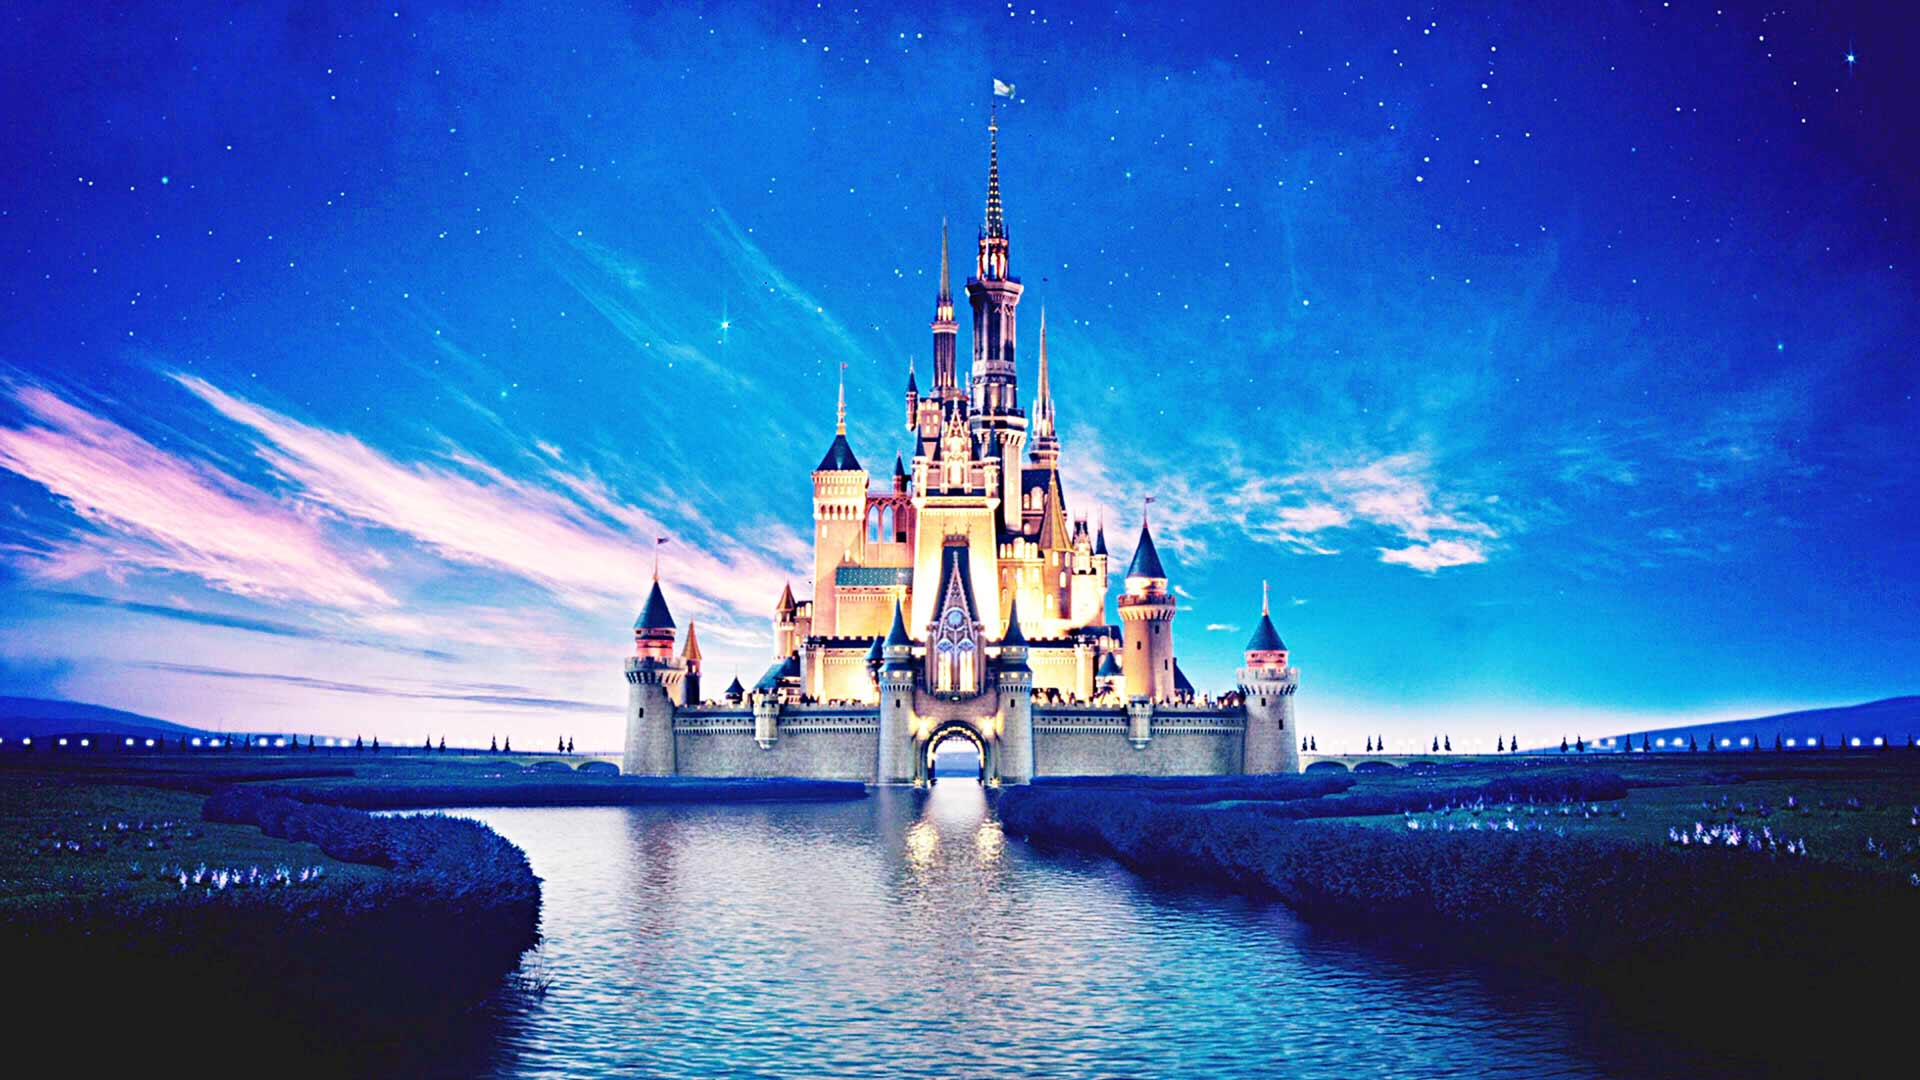 disney wallpapers hd disney castle wallpapers desktop background hd1 1920x1080